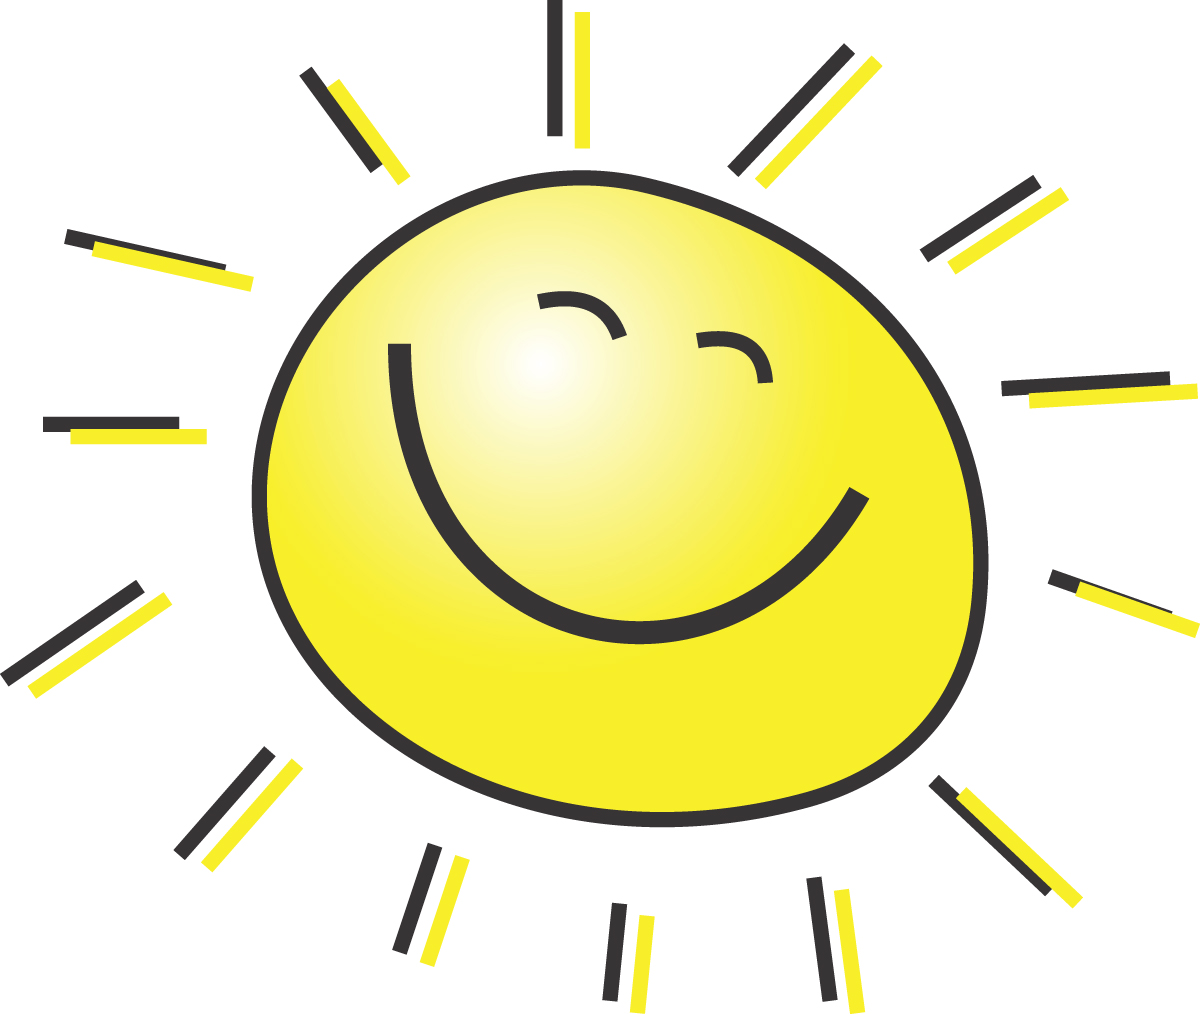 https://i0.wp.com/free.clipartof.com/5-Free-Summer-Clipart-Illustration-Of-A-Happy-Smiling-Sun.jpg